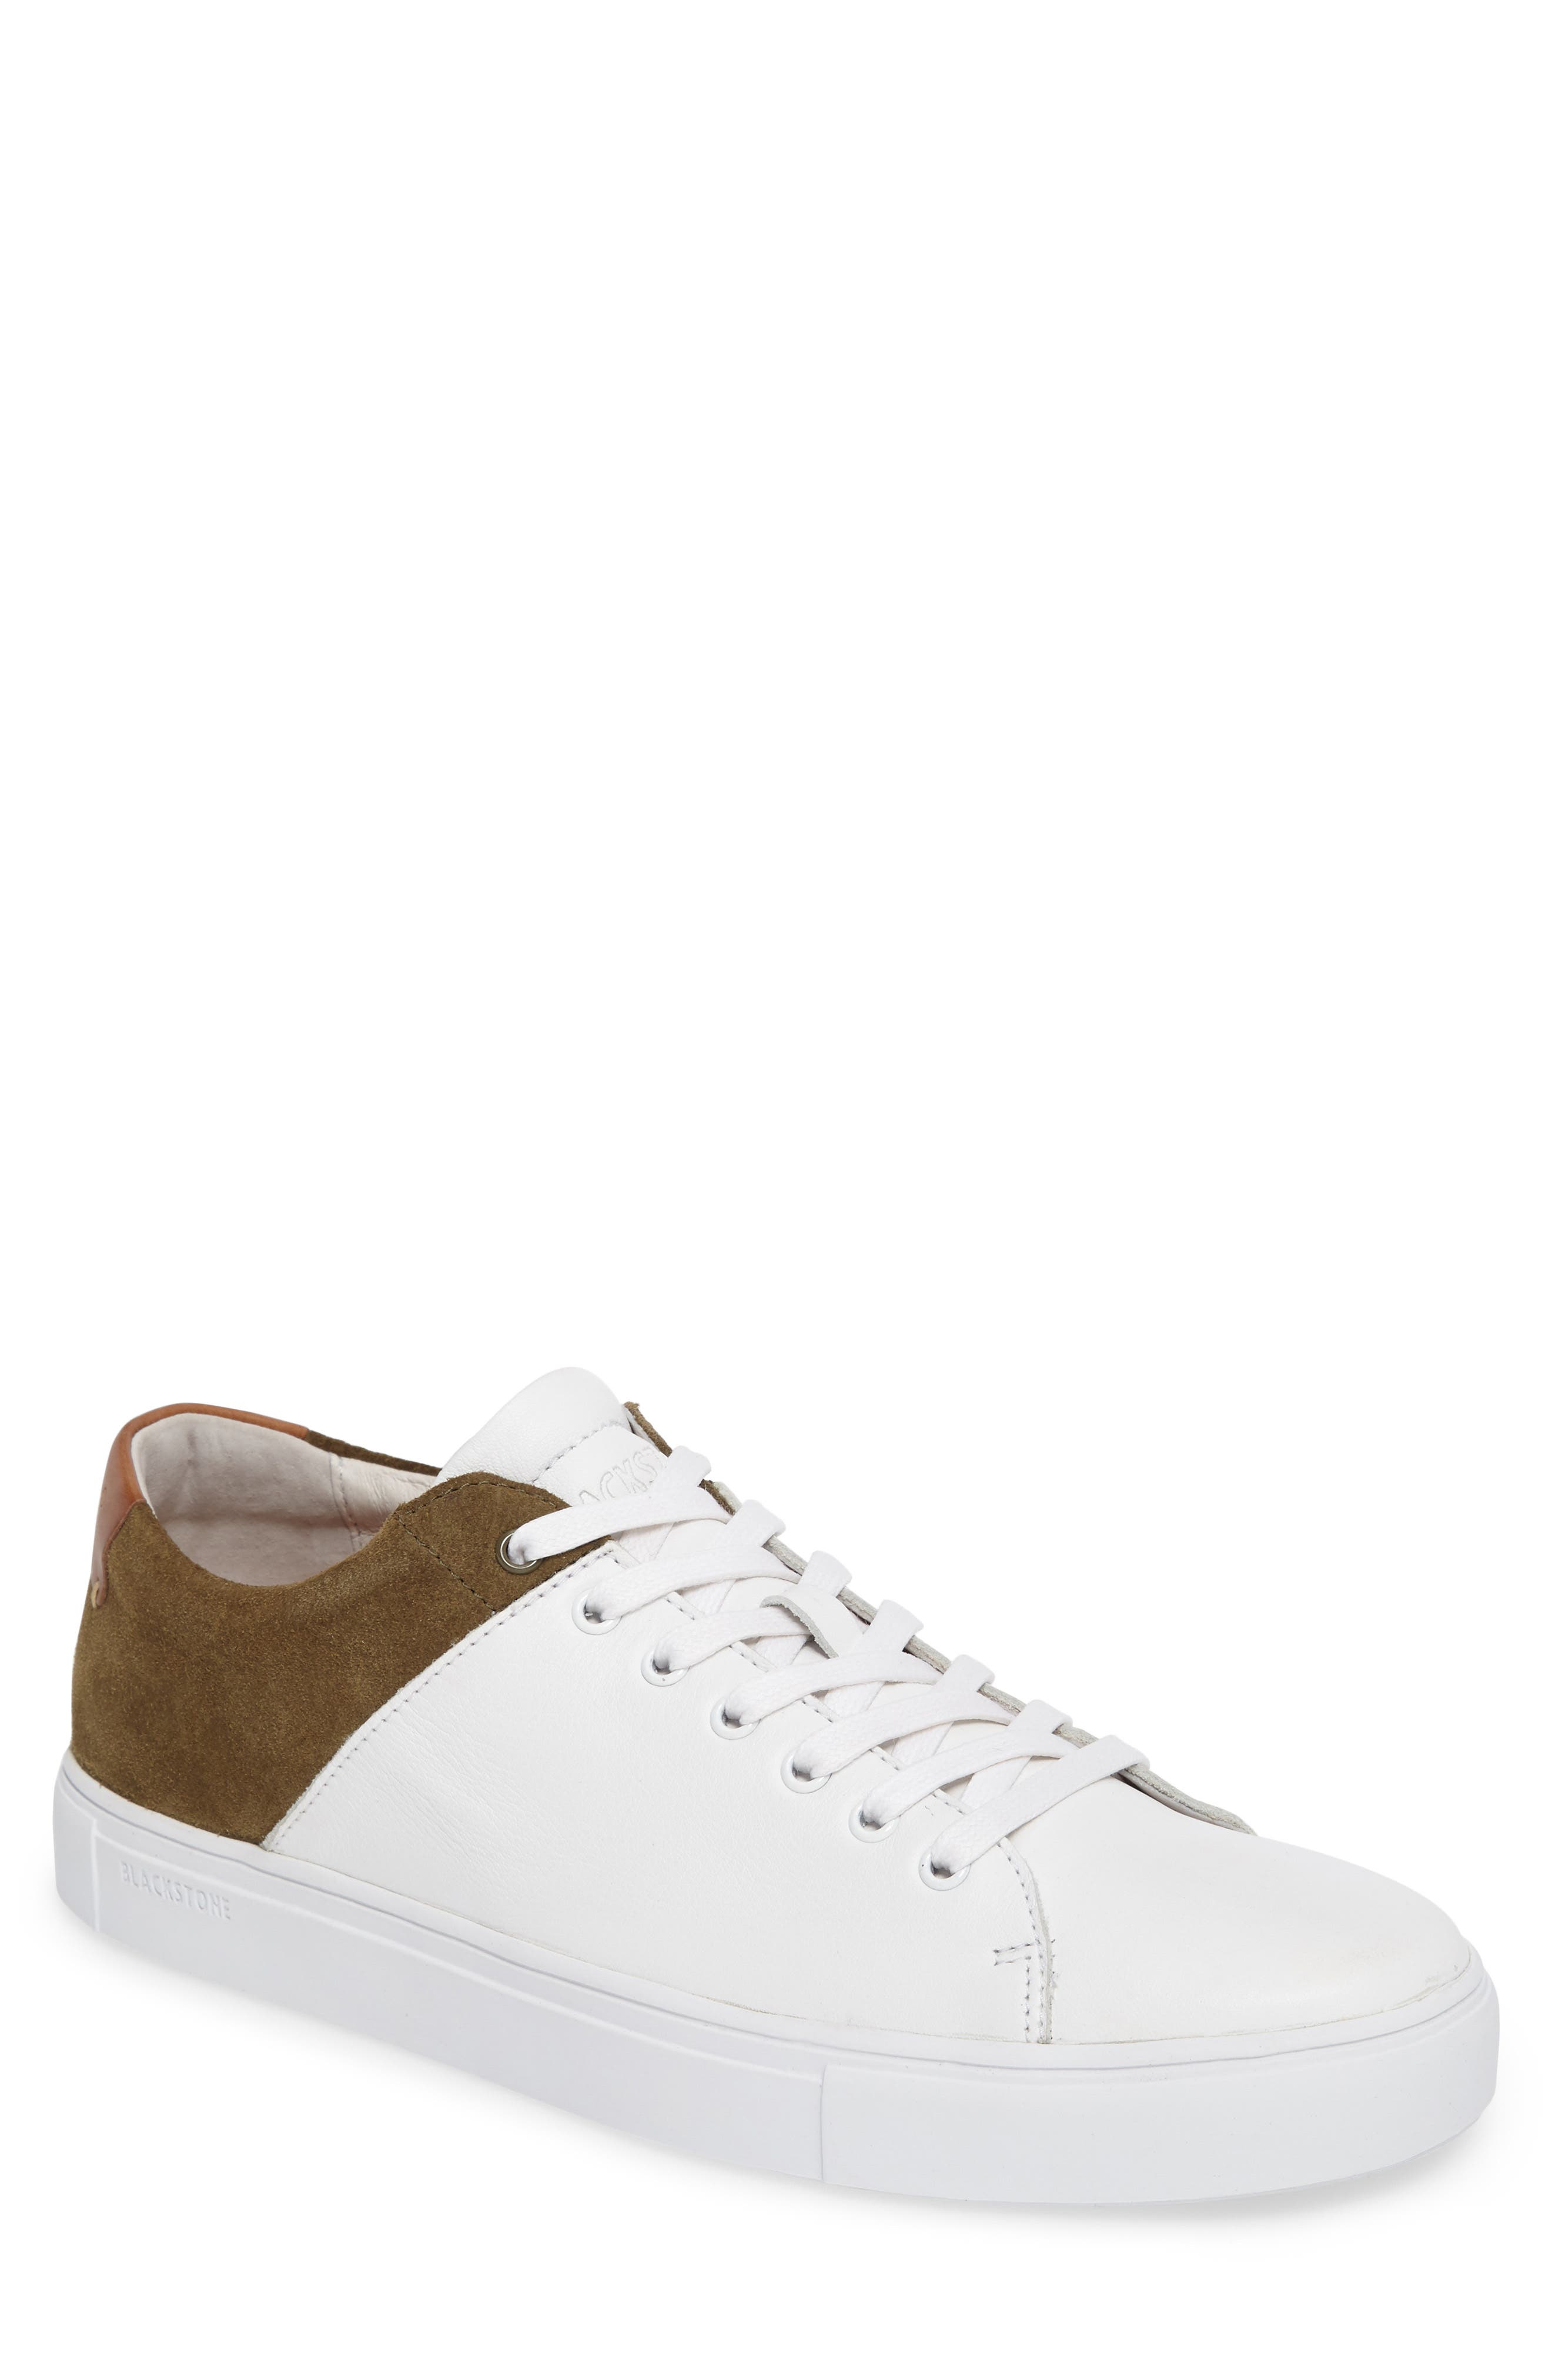 NM03 Two-Tone Sneaker,                             Main thumbnail 1, color,                             195